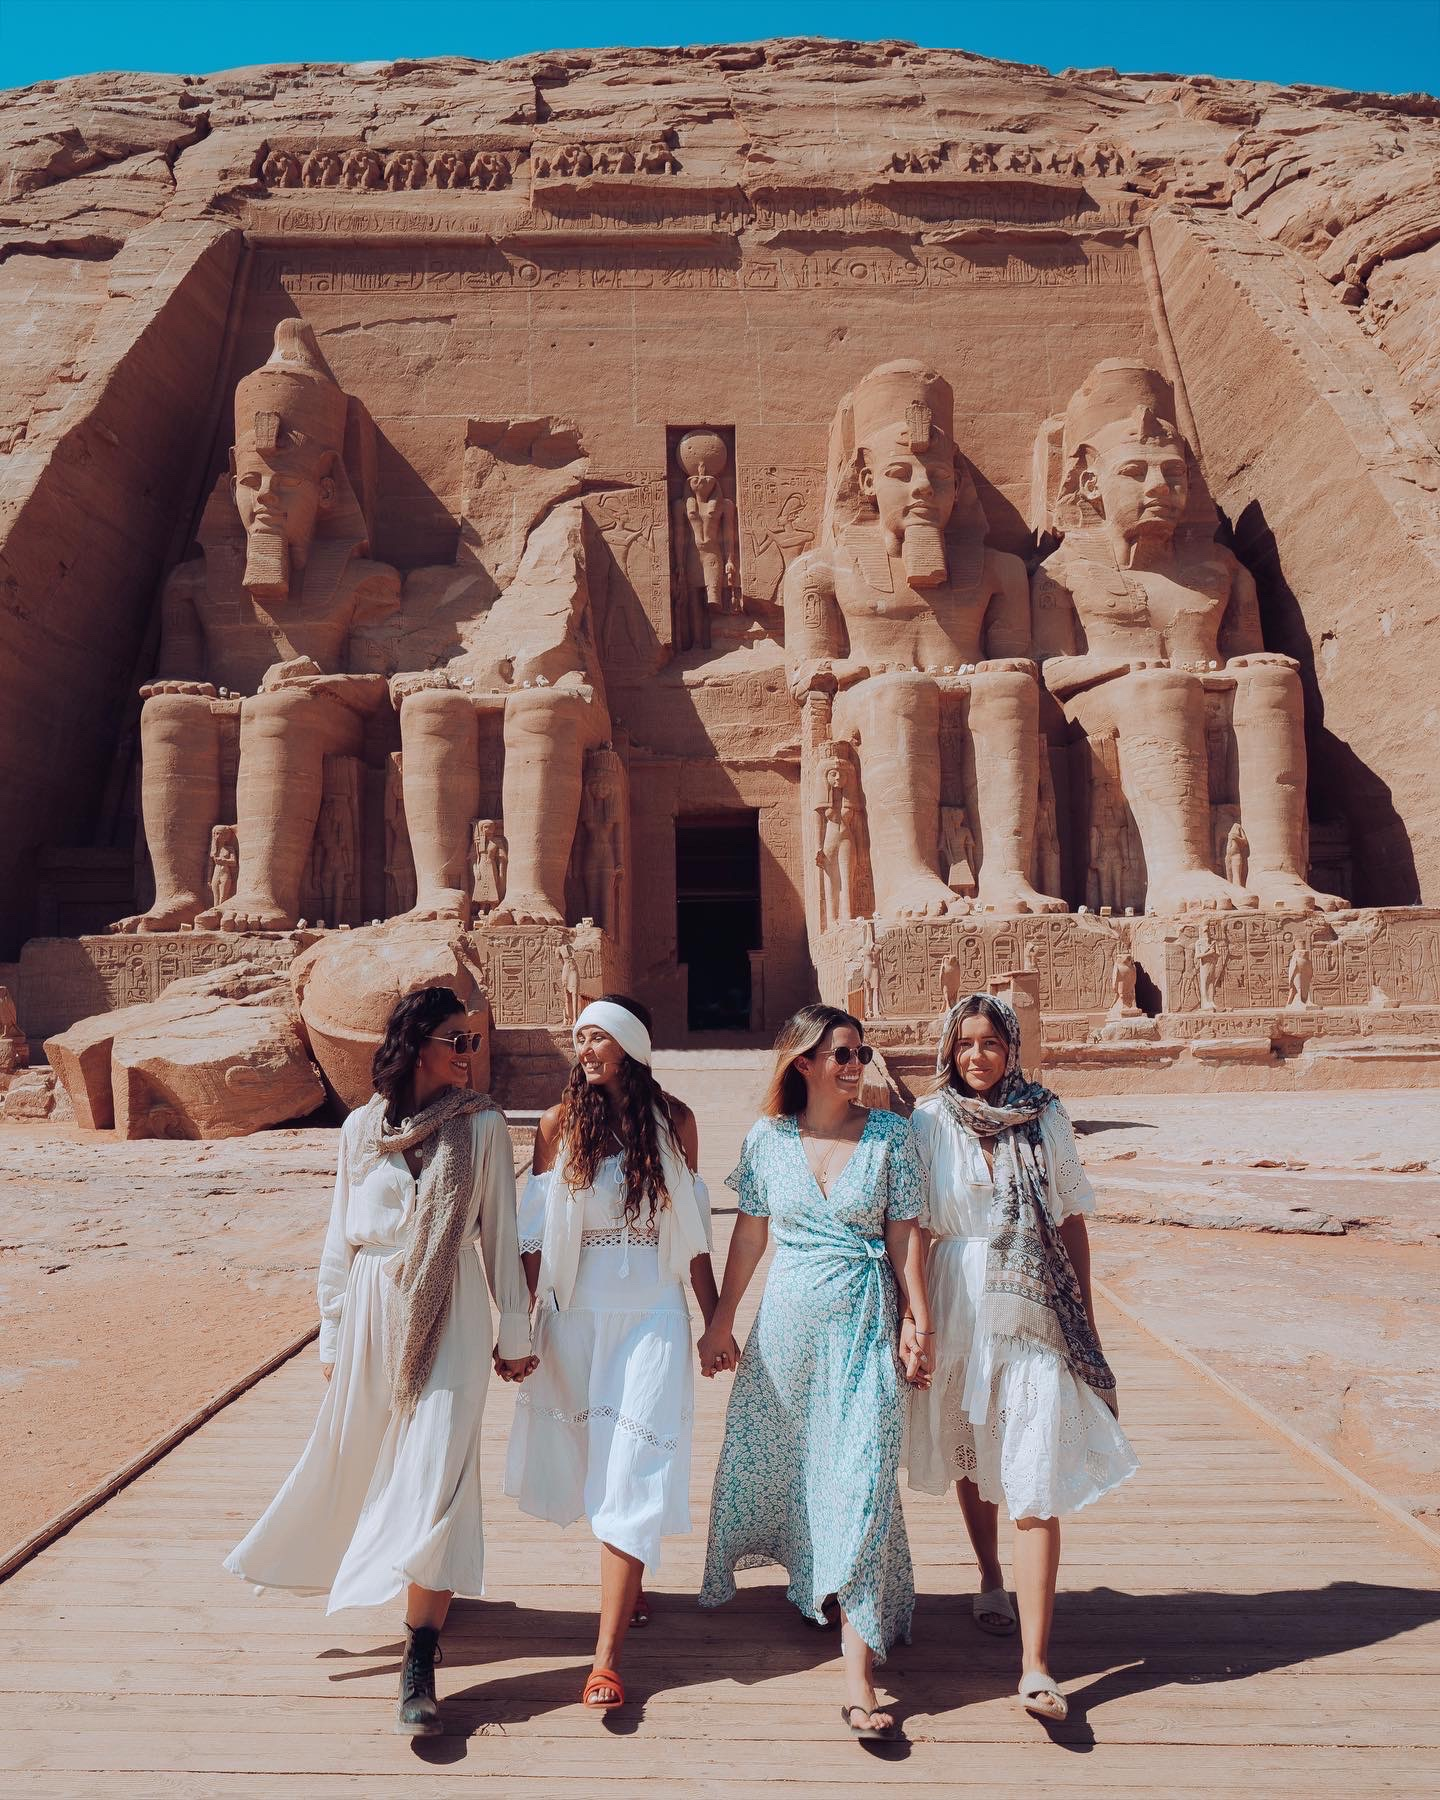 A group of women in Egypt in front of the Abu Simbel temple for Ramesses